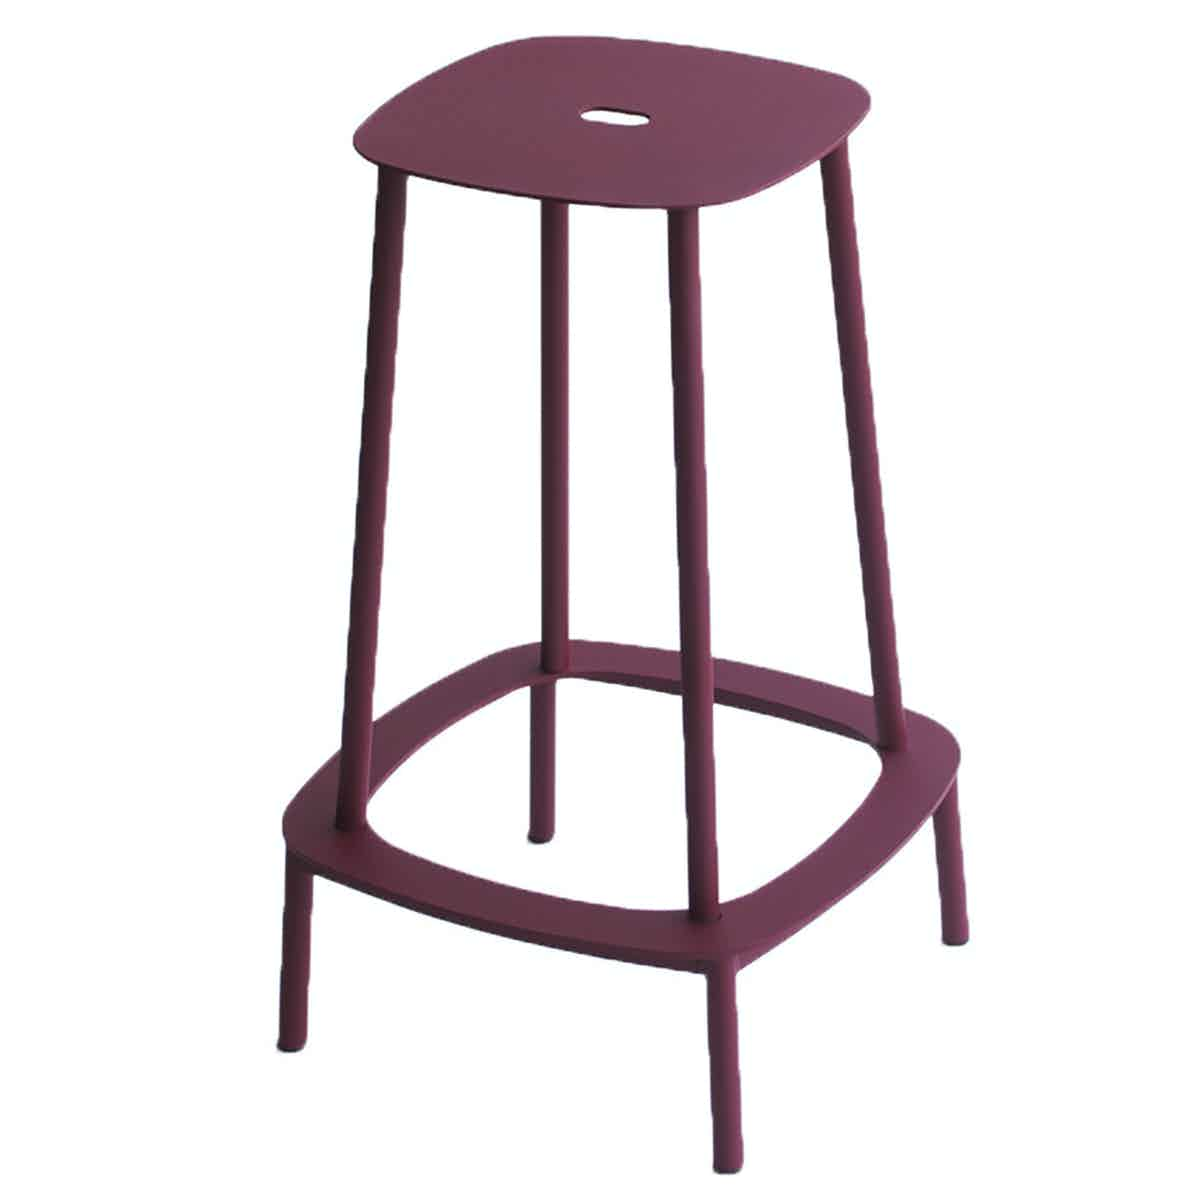 Division 12 Crt Counter Stool Knauf Brown Haute Living